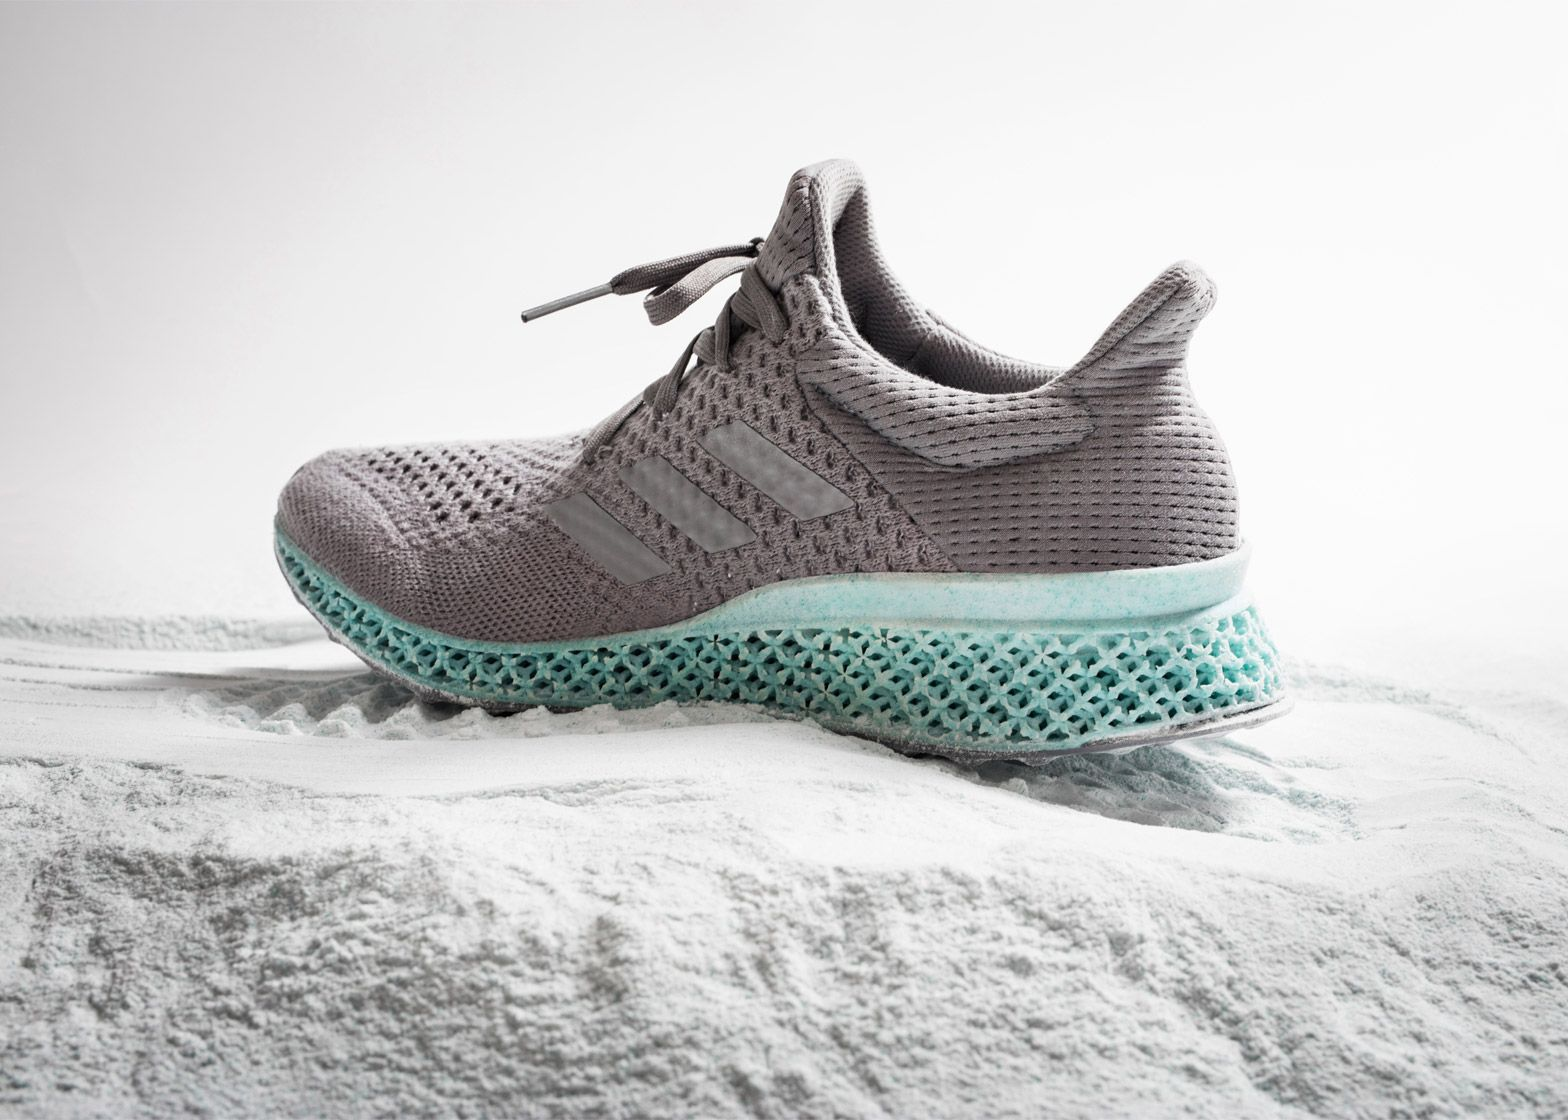 Adidas has created a concept sports shoe with an upper made from ocean  plastic and a